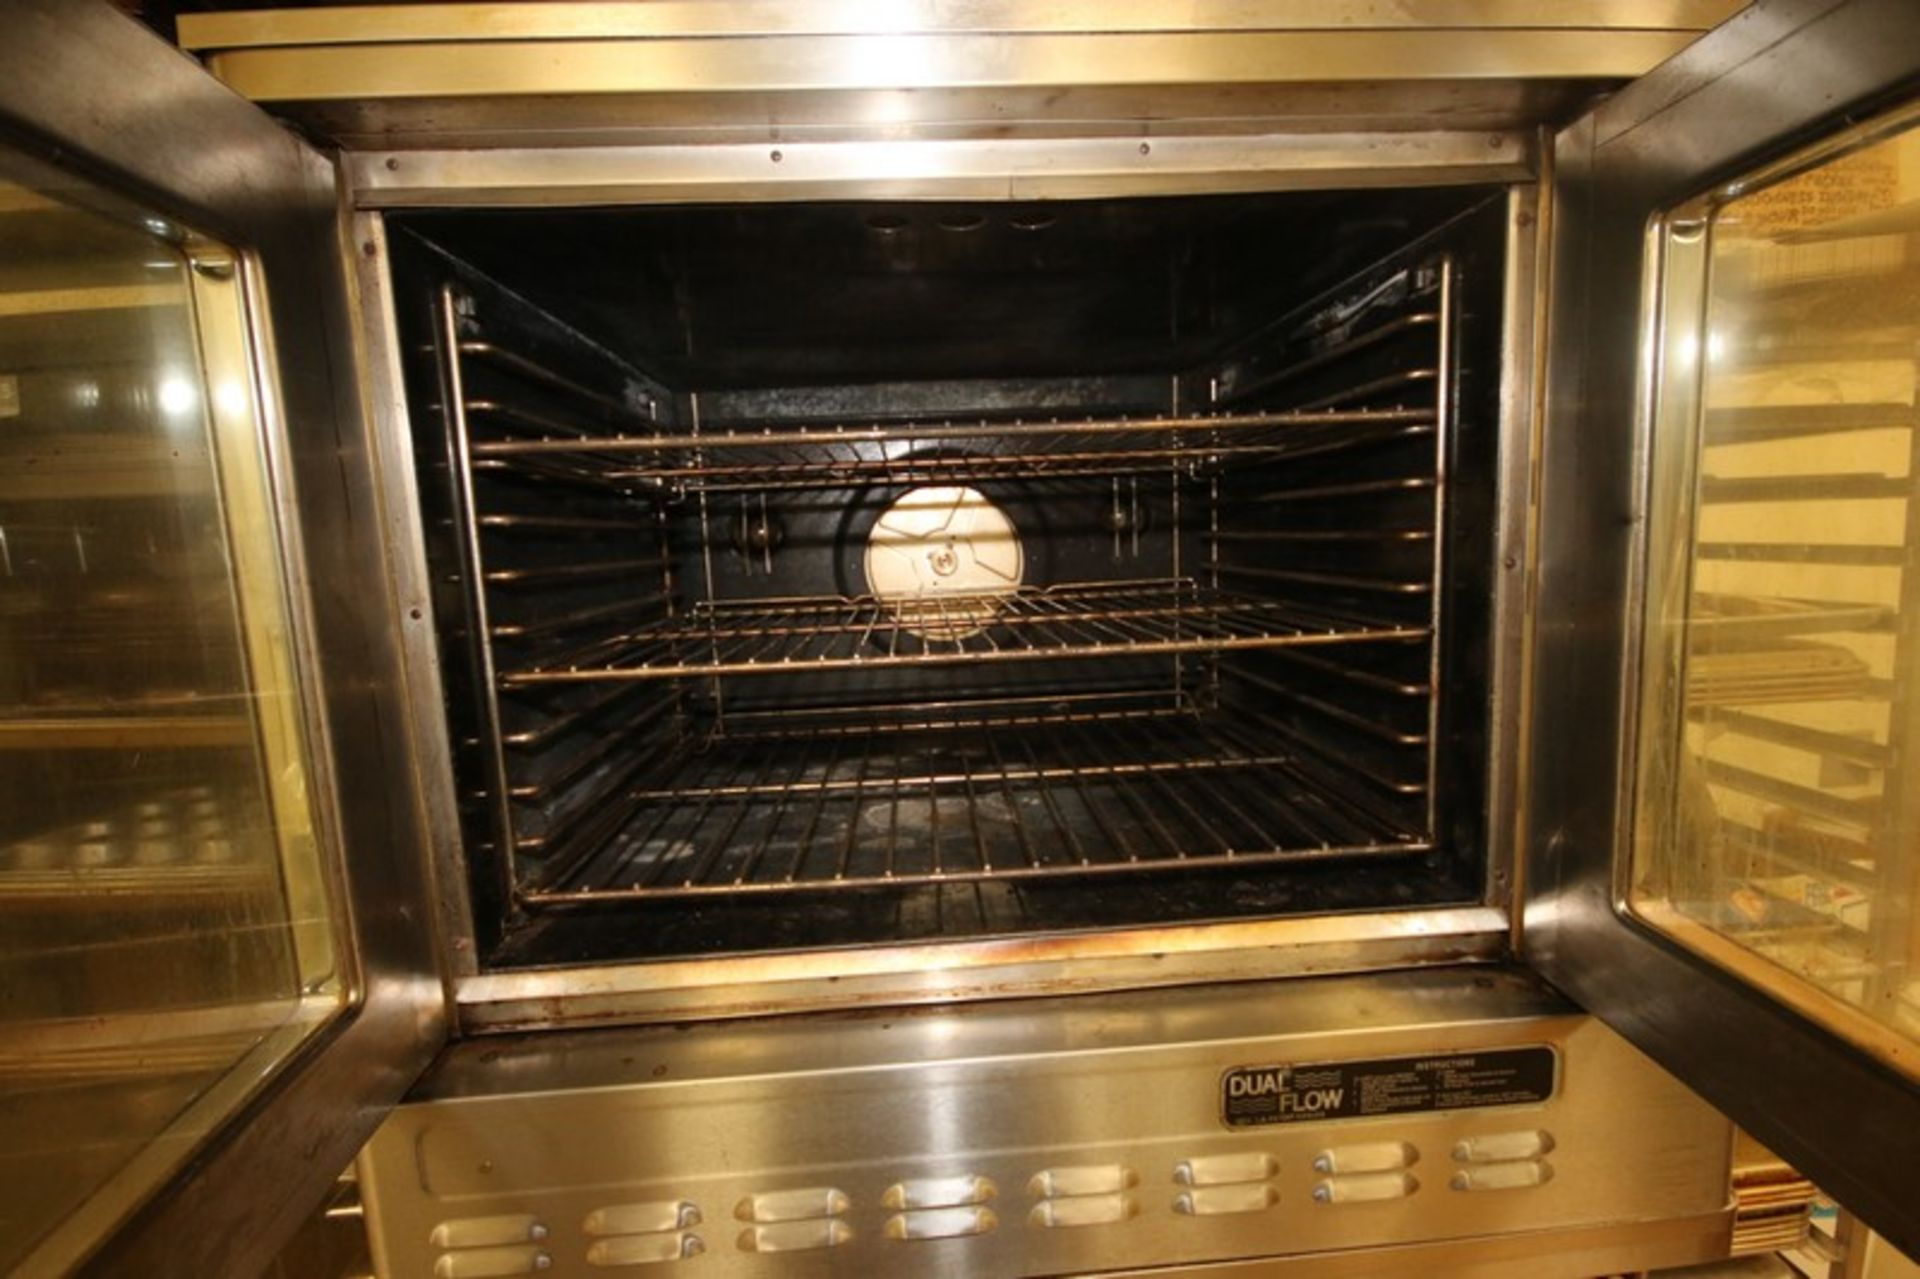 Blodgett Double Deck S/S Oven, with (3) Internal Wire Shelves In Each Compartment, Mounted on - Image 3 of 5